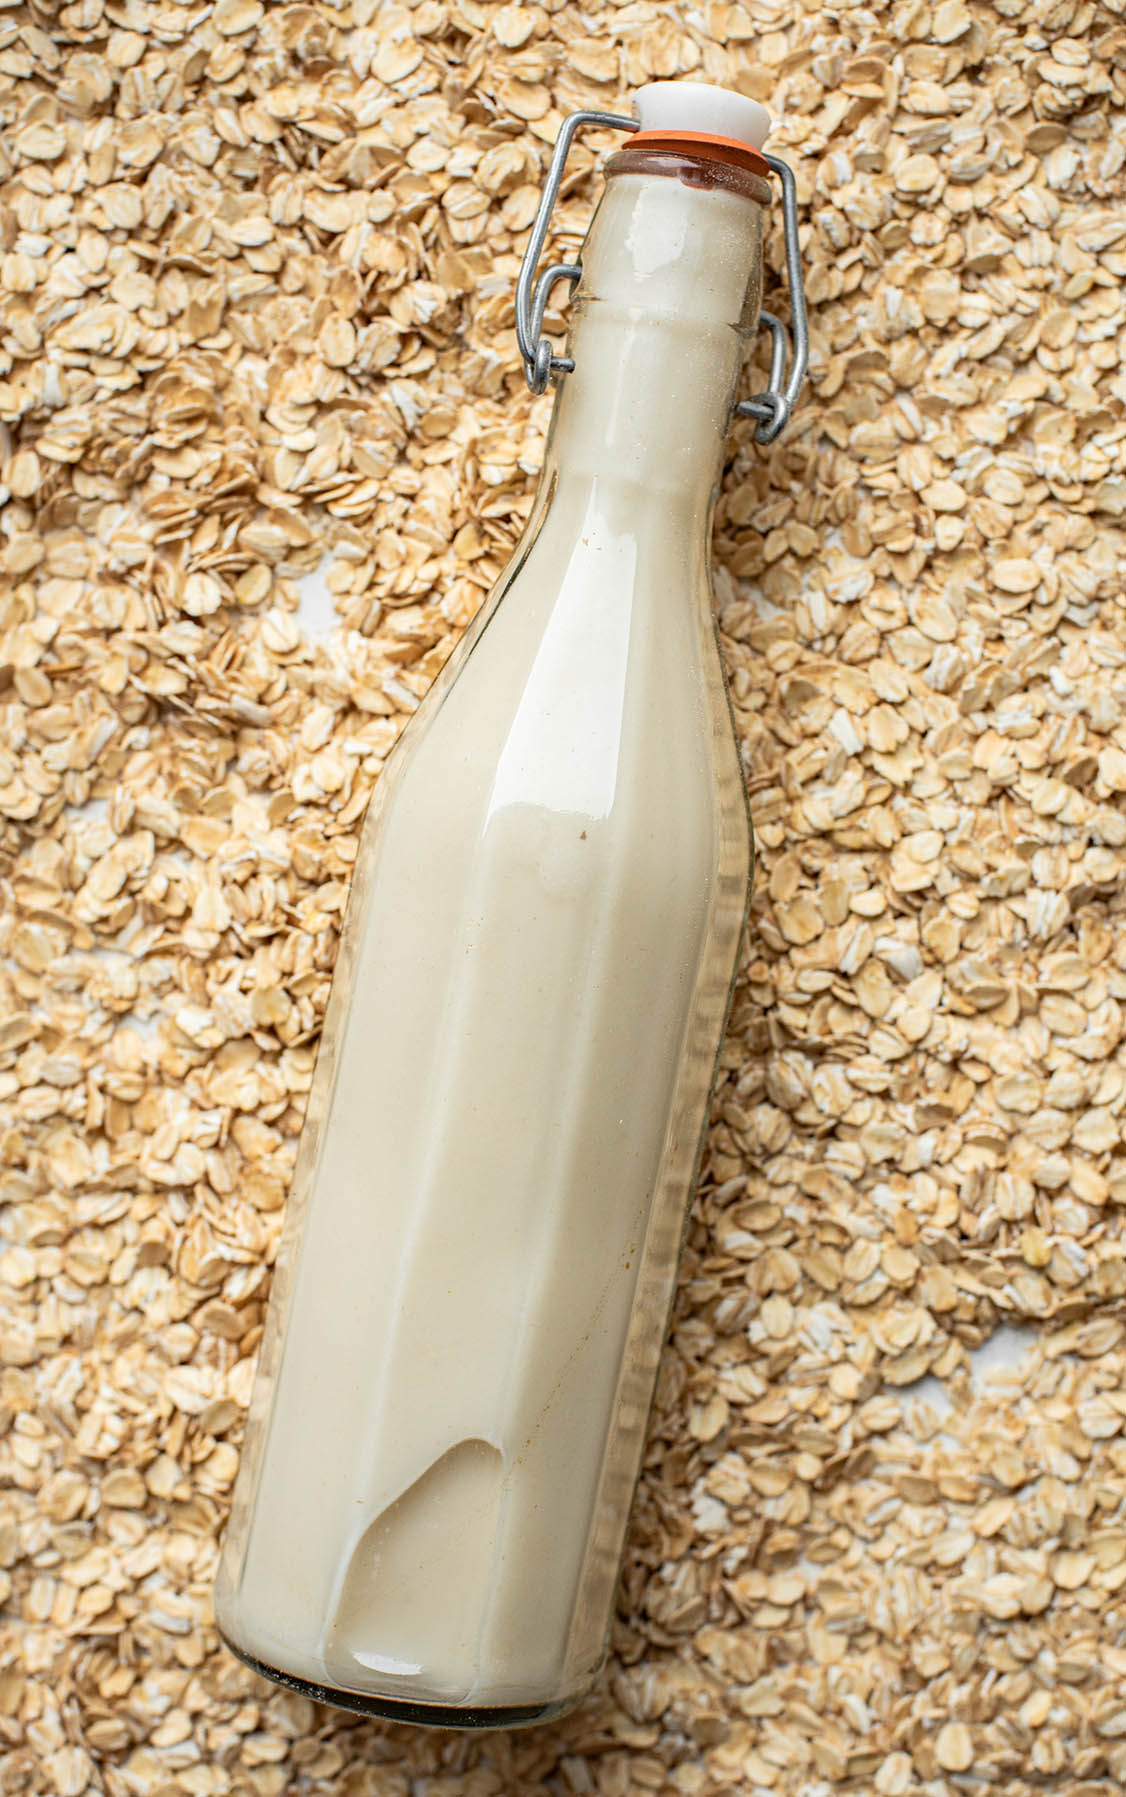 Oat milk in a flip-top glass bottle lying in a pile of oats.